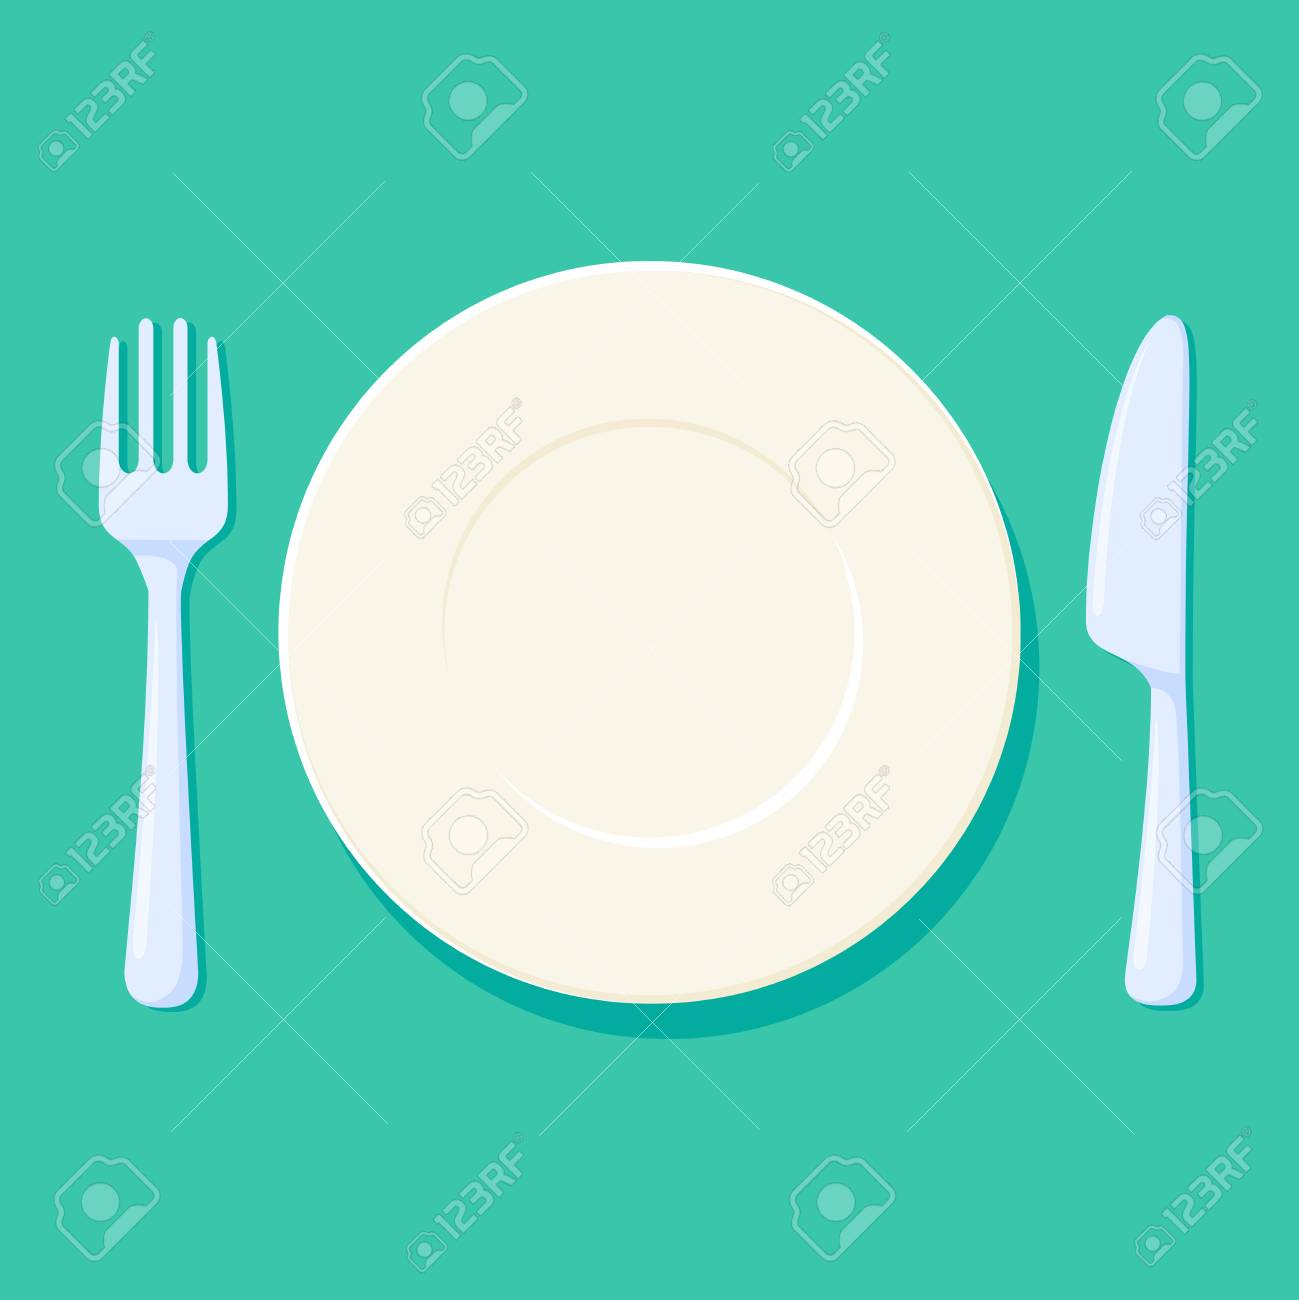 Plate, Fork And Knife Vector Illustration. Place Setting With ...